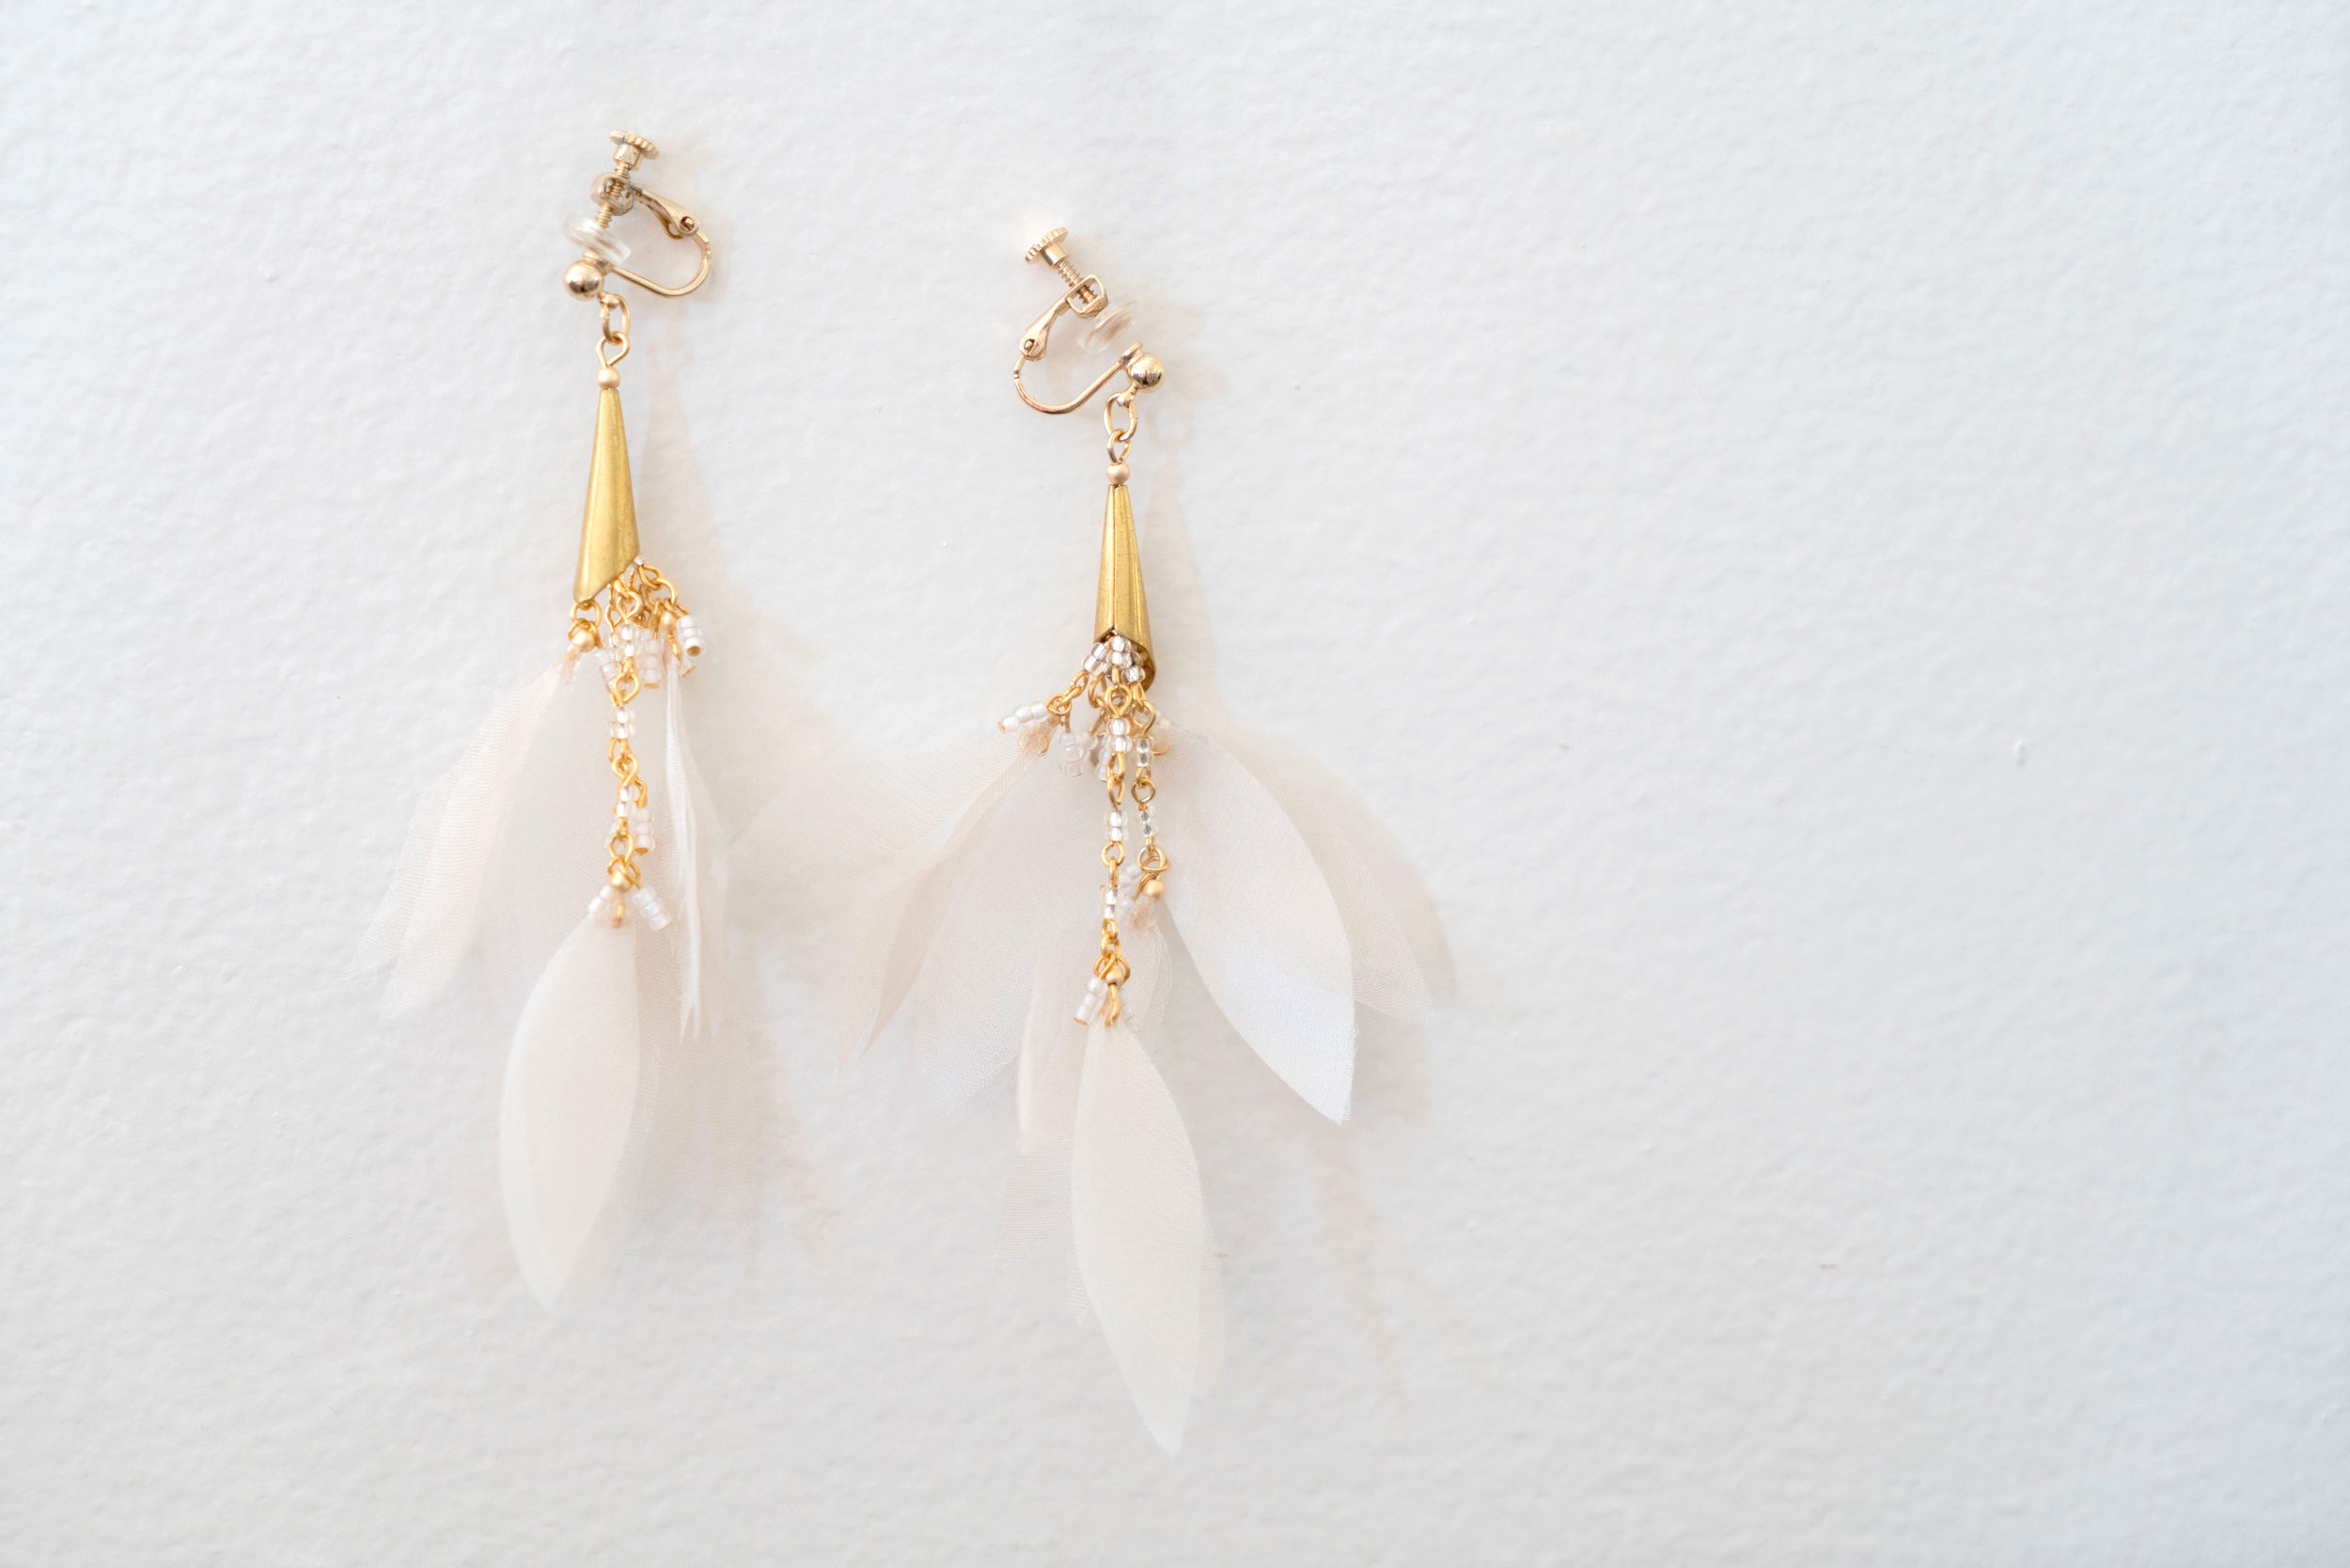 10. Orgablanca ✳︎ Earrings ✳︎